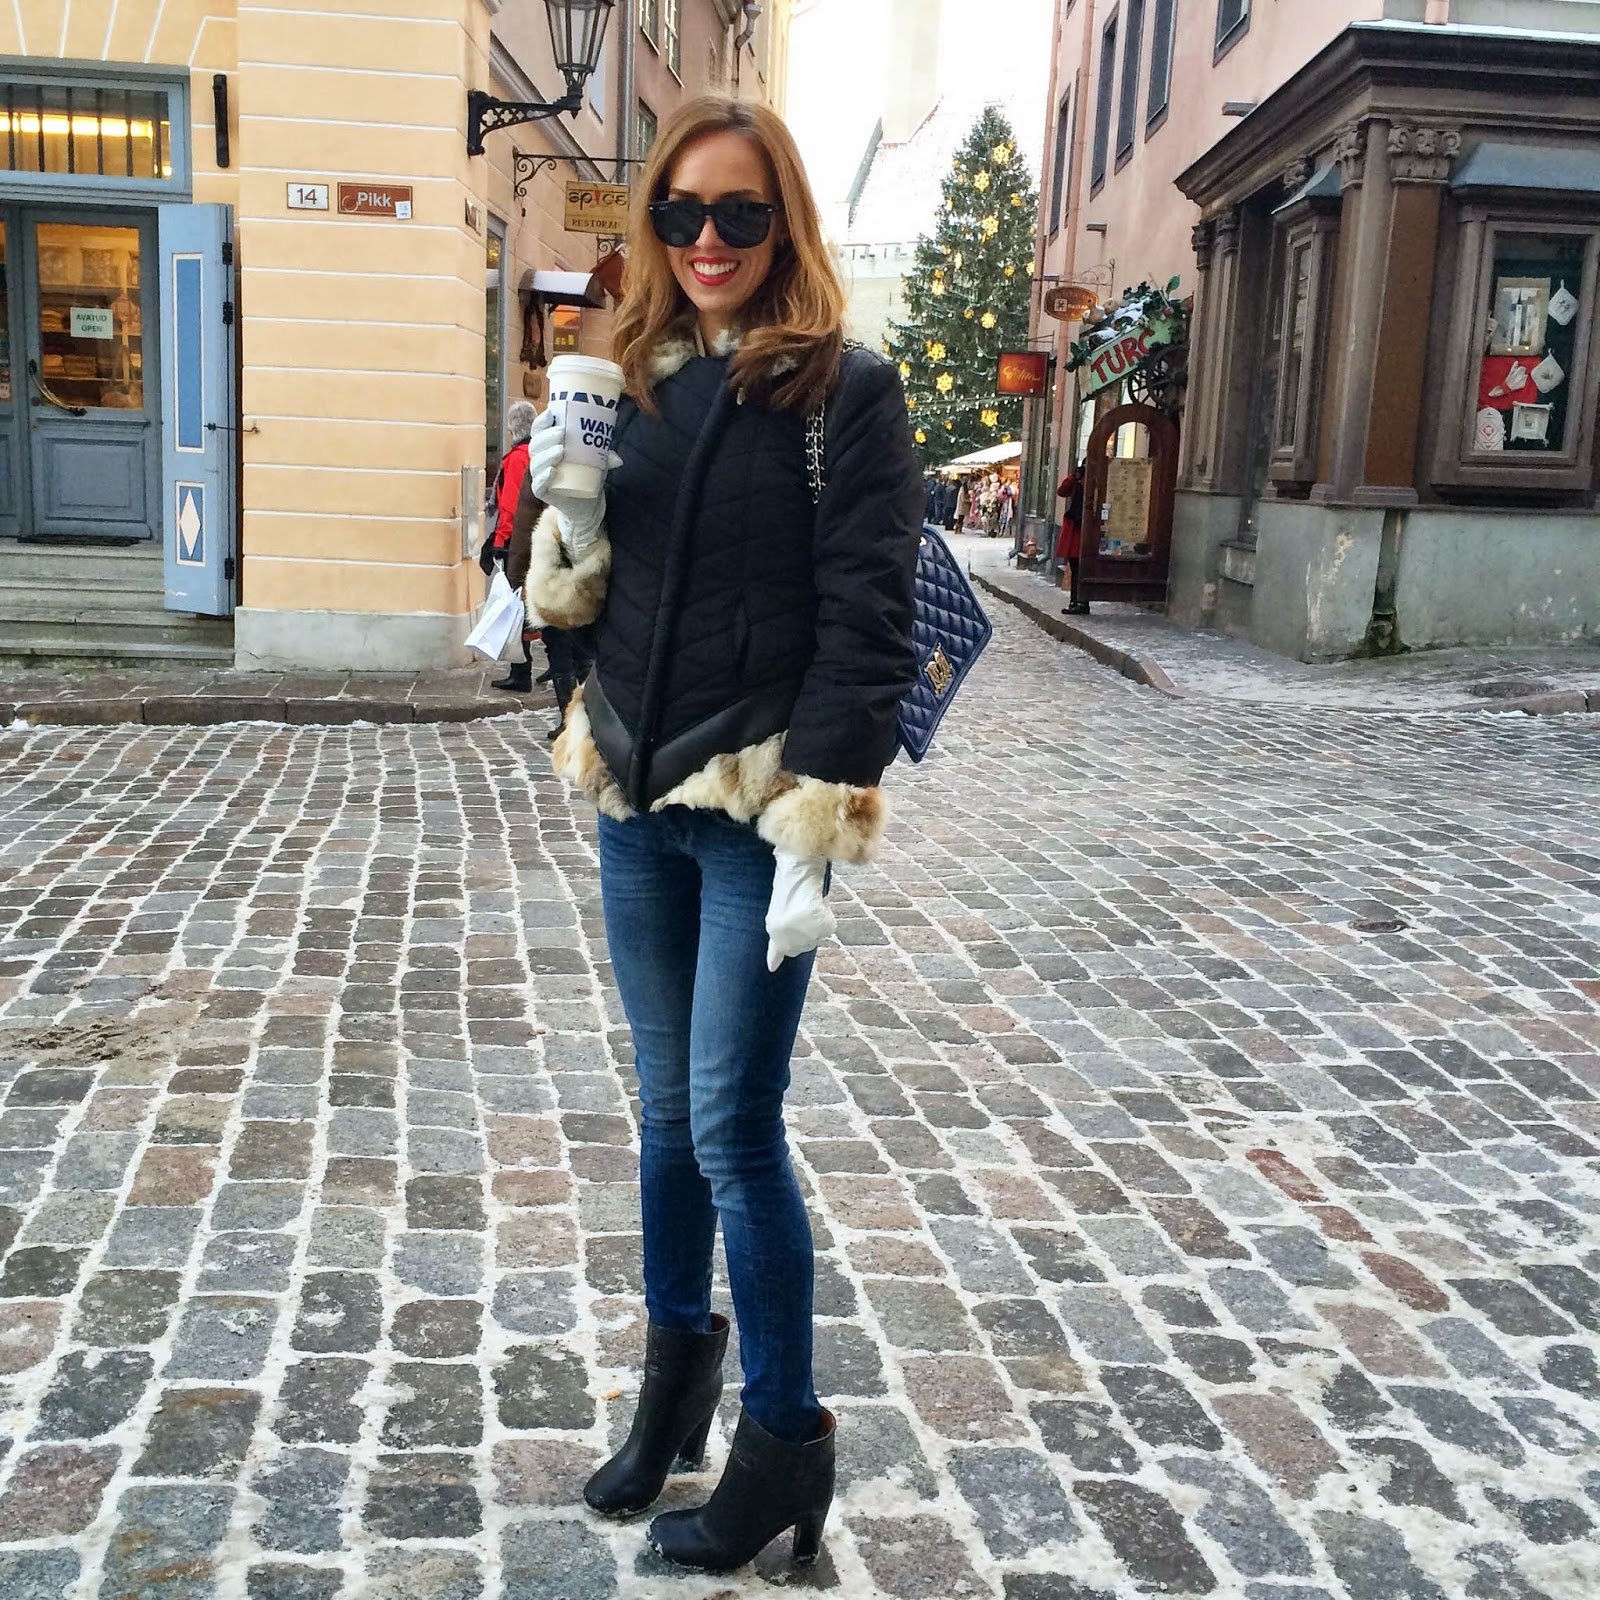 tallinn-old-town-christmas-market-winter-outfit-jeans-fur-jacket-coffee